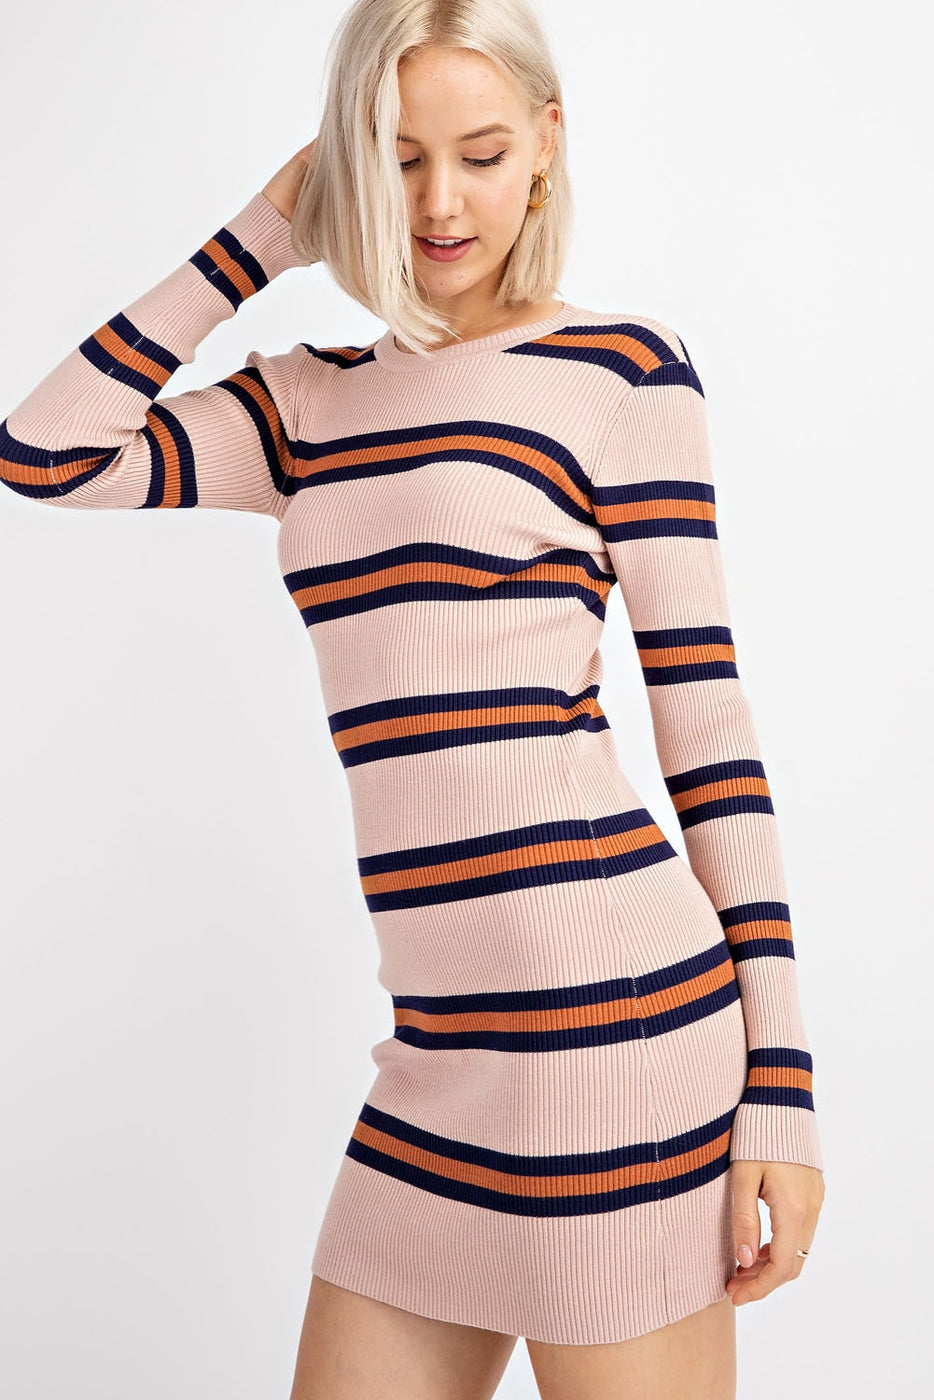 Long Sleeve Sweater Dress With Midriff Cutout In Blush-Brown Stripe Siin Bees